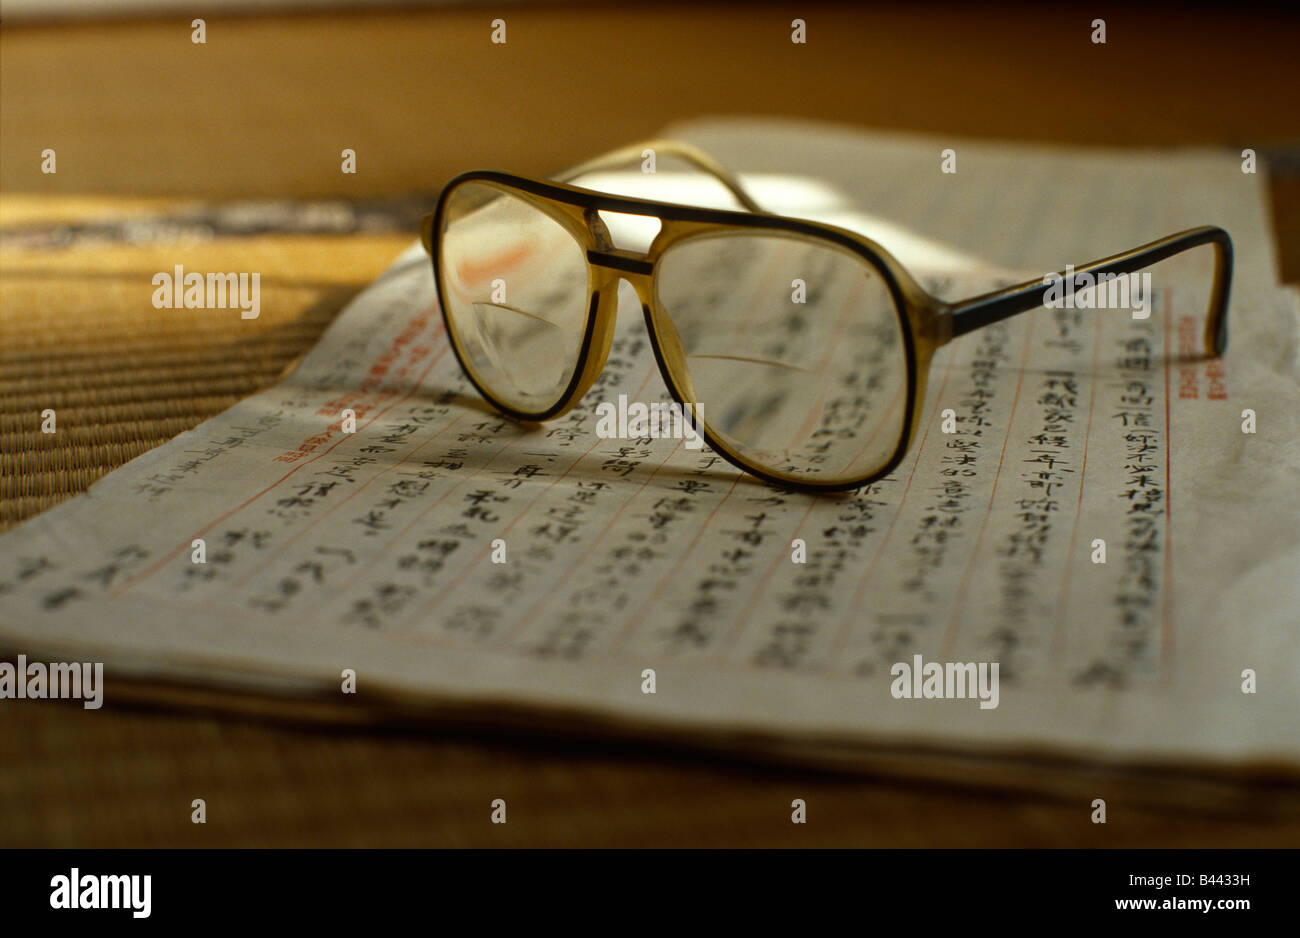 Old glasses on top of an old letter written in Chinese. - Stock Image